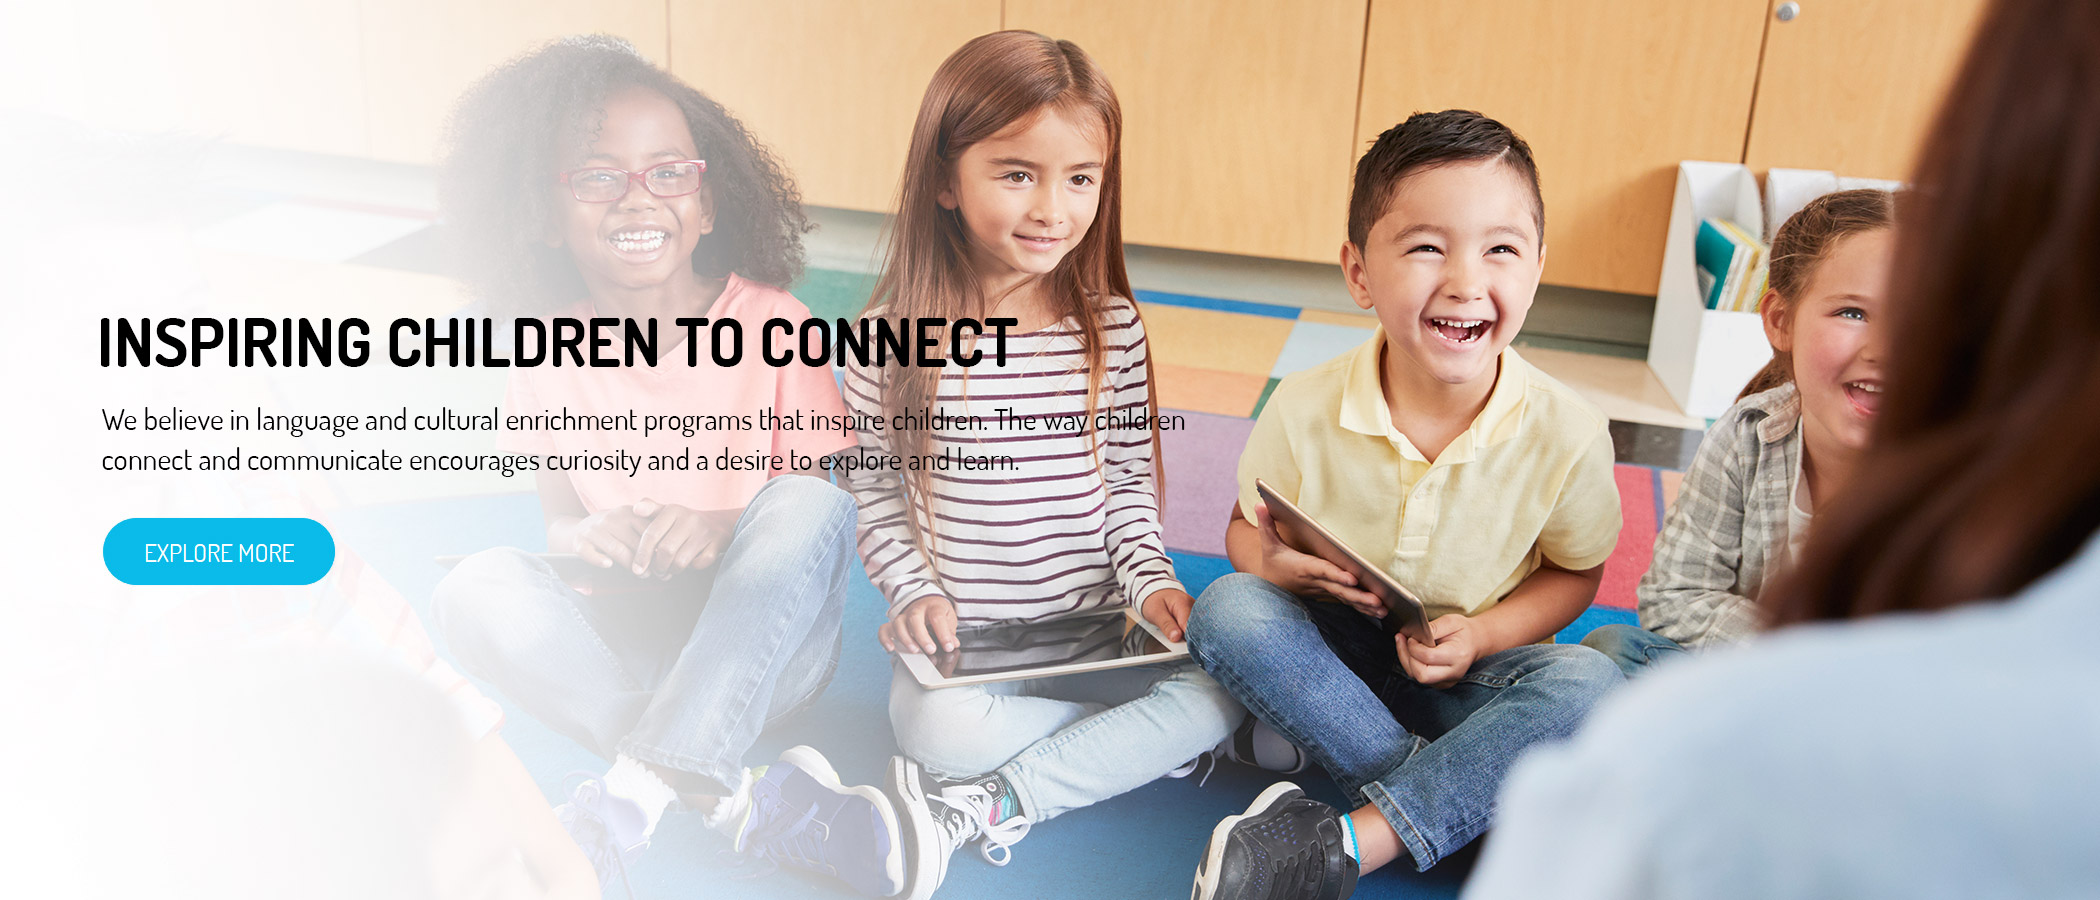 Inspiring Children To Connect